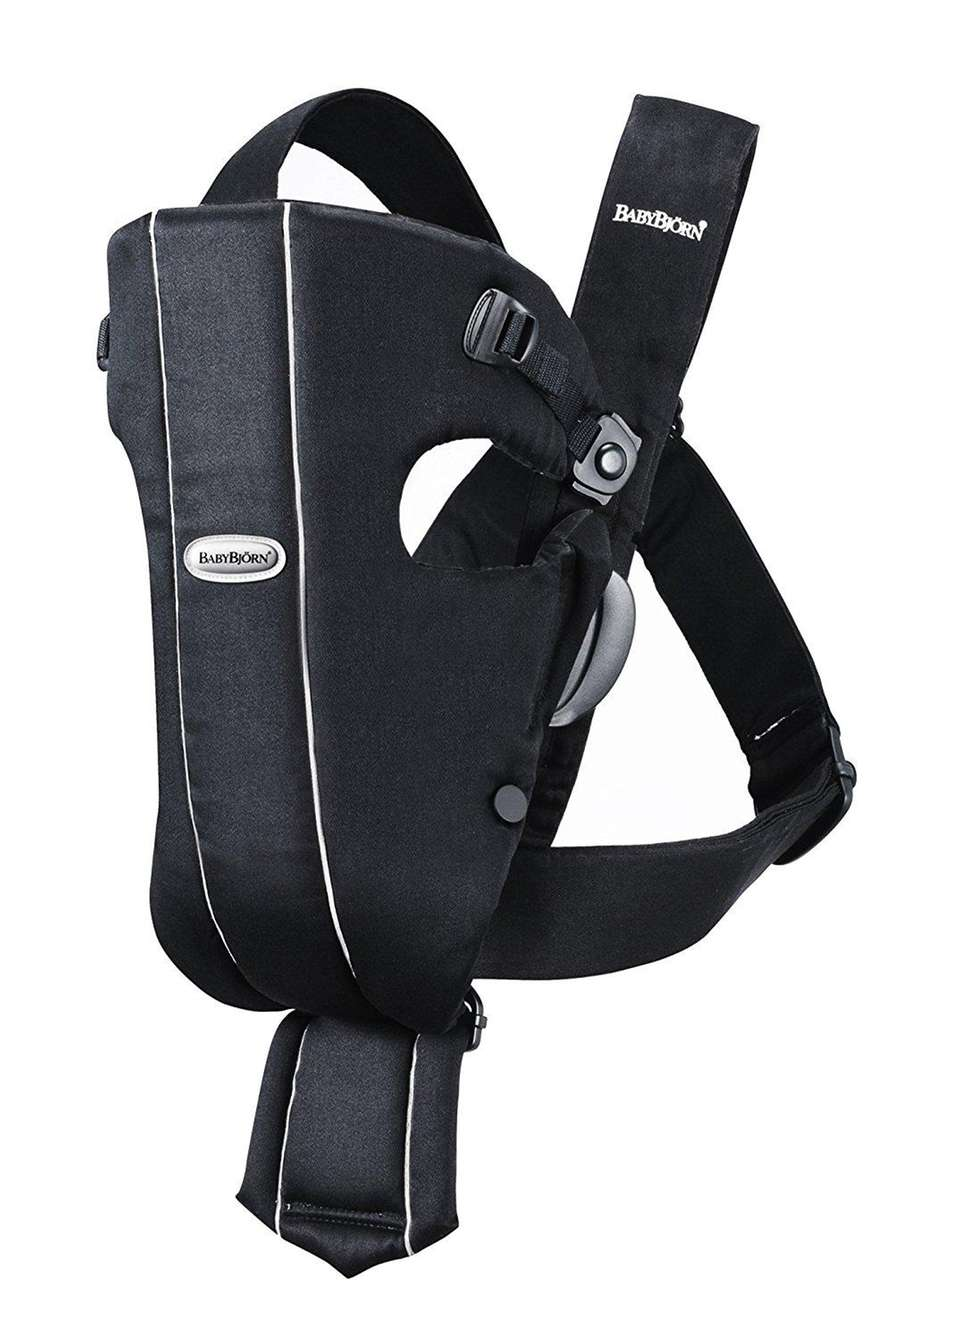 DETAILS: Provides head/ neck/ spine/ hip support, offers